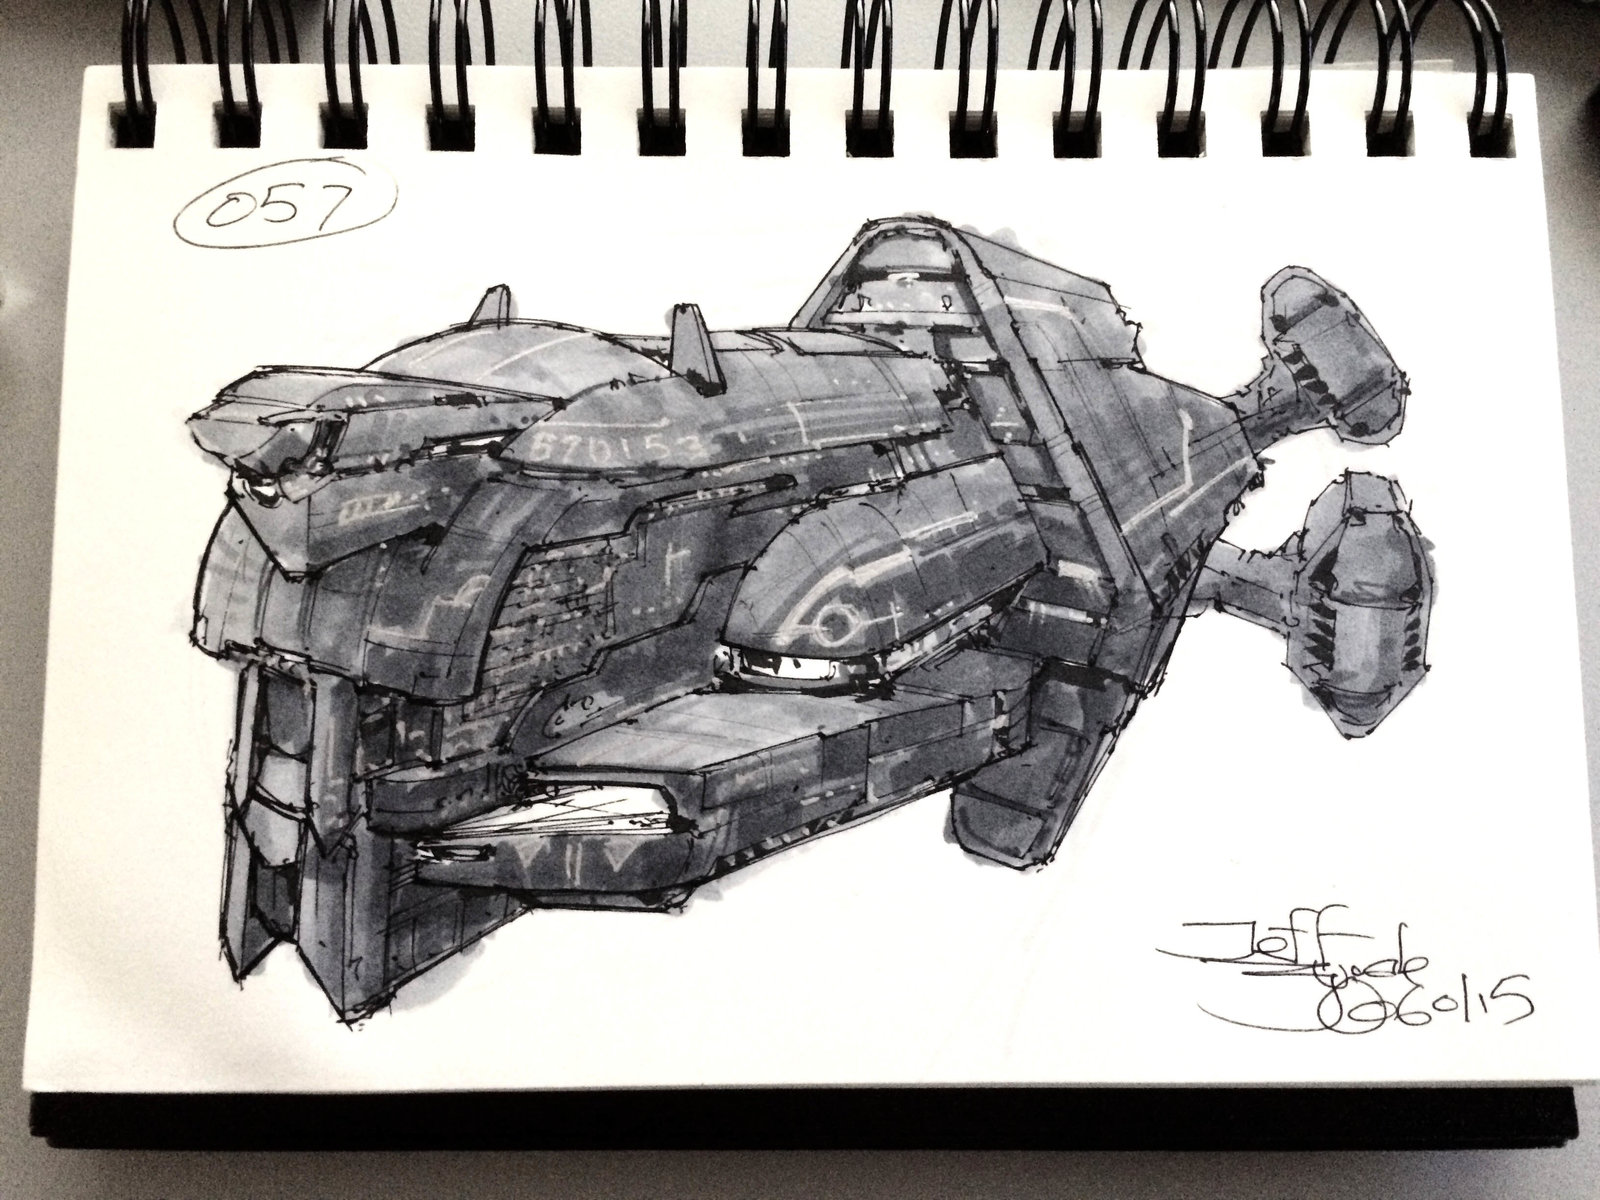 SpaceshipADay 057